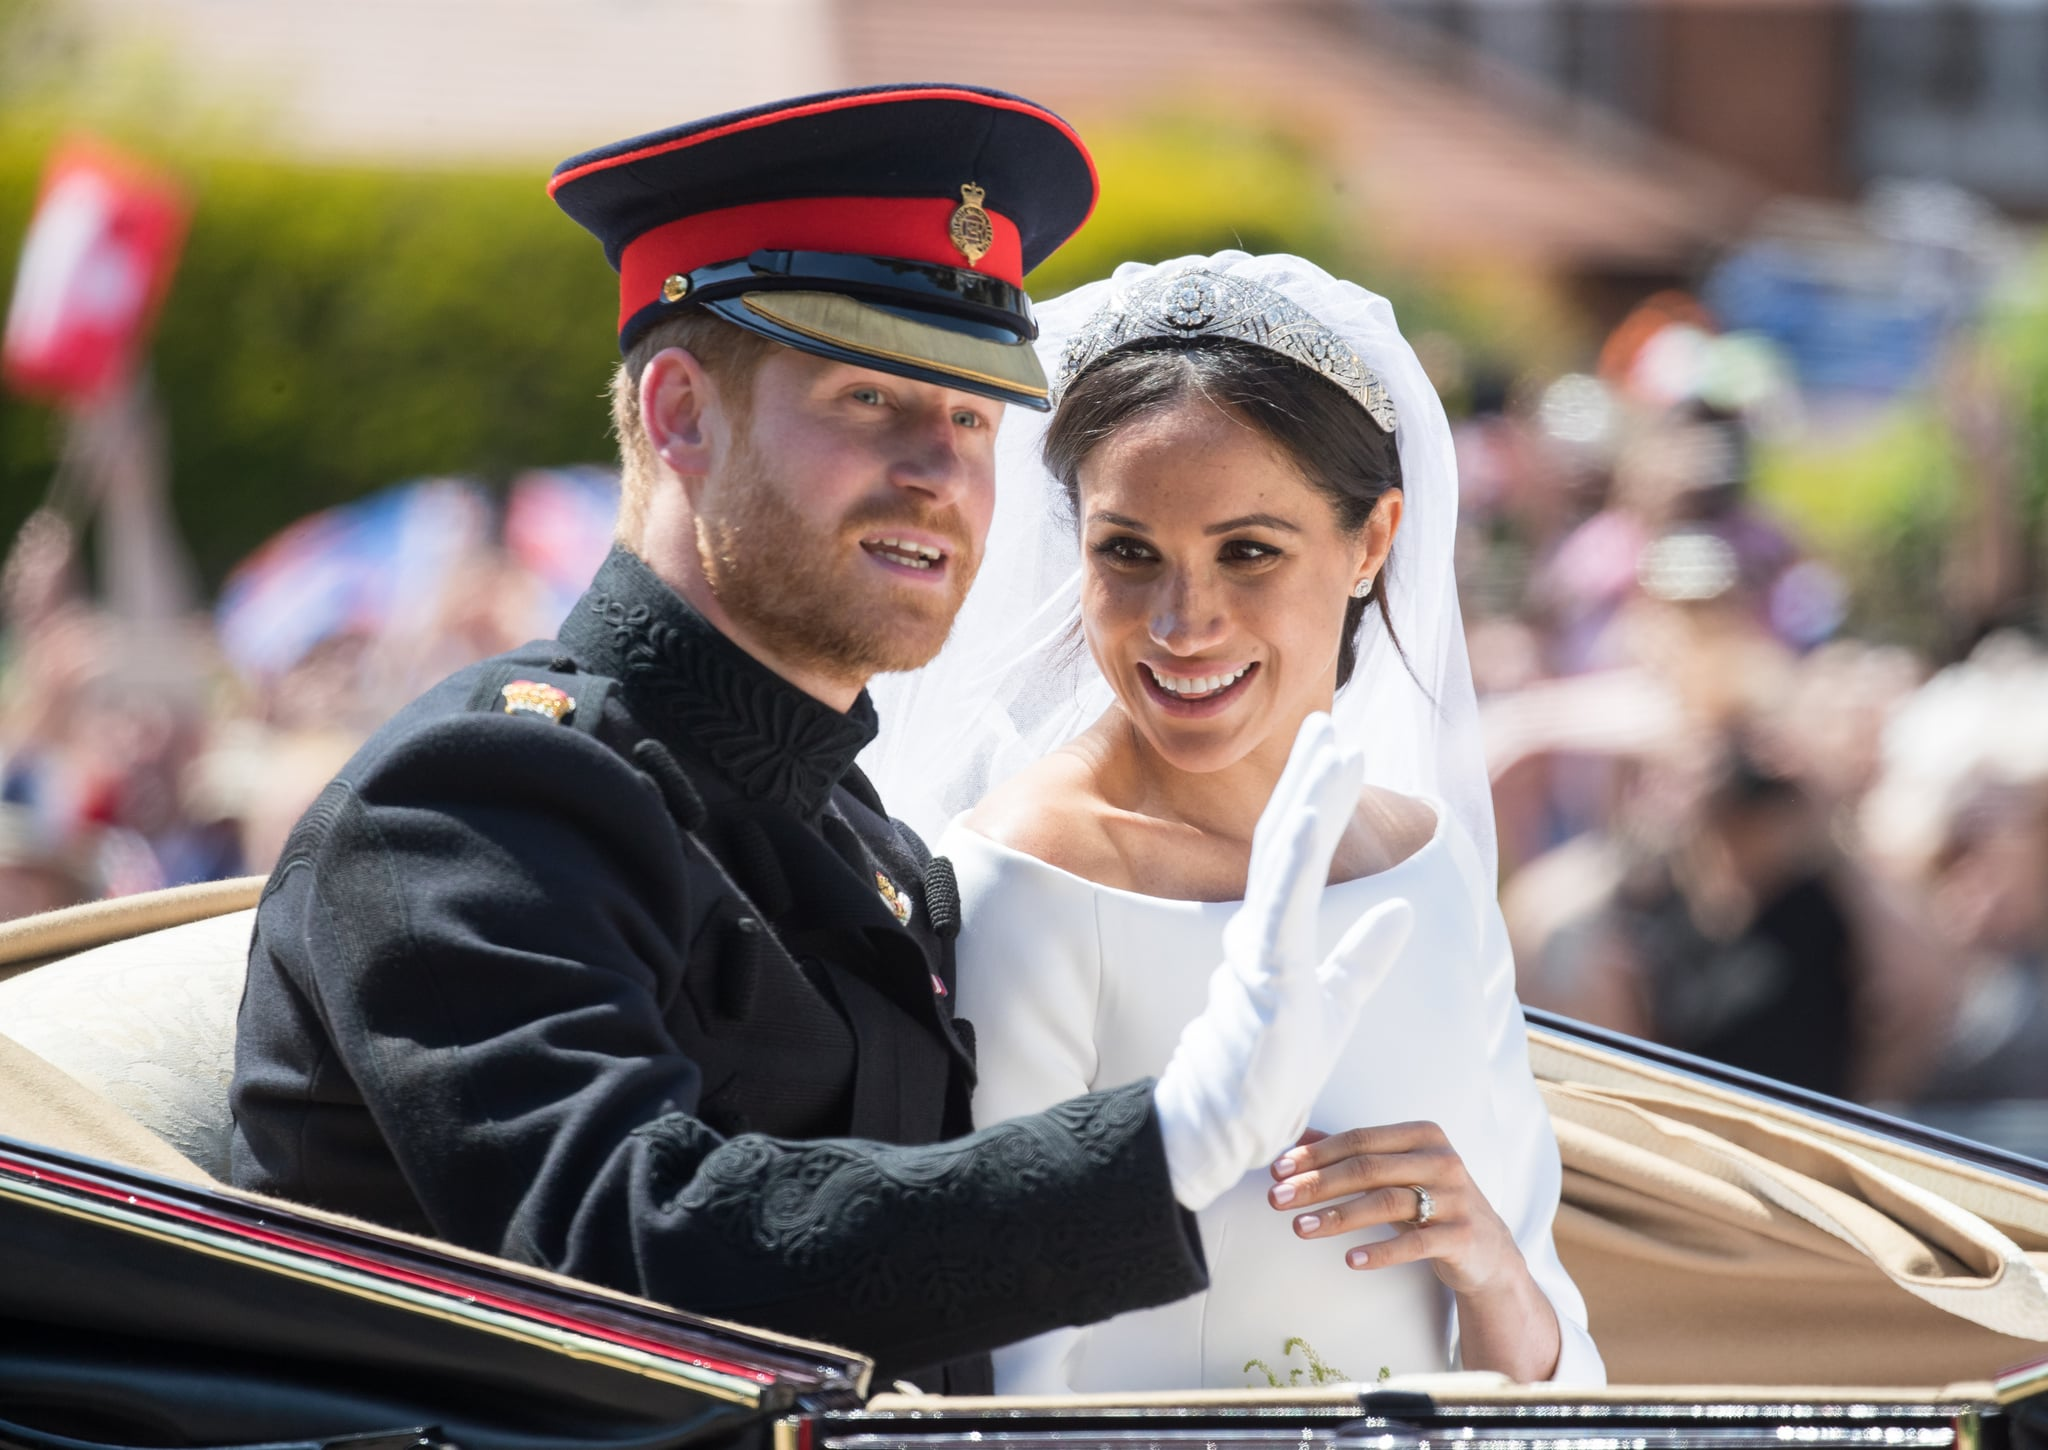 WINDSOR, ENGLAND - MAY 19:  Prince Harry, Duke of Sussex and Meghan, Duchess of Sussex ride by carriage following their wedding at St George's Chapel, Windsor Castle on May 19, 2018 in Windsor, England. Prince Henry Charles Albert David of Wales marries Ms. Meghan Markle in a service at St George's Chapel inside the grounds of Windsor Castle. Among the guests were 2200 members of the public, the royal family and Ms. Markle's Mother Doria Ragland.  (Photo by Pool/Samir Hussein/WireImage)